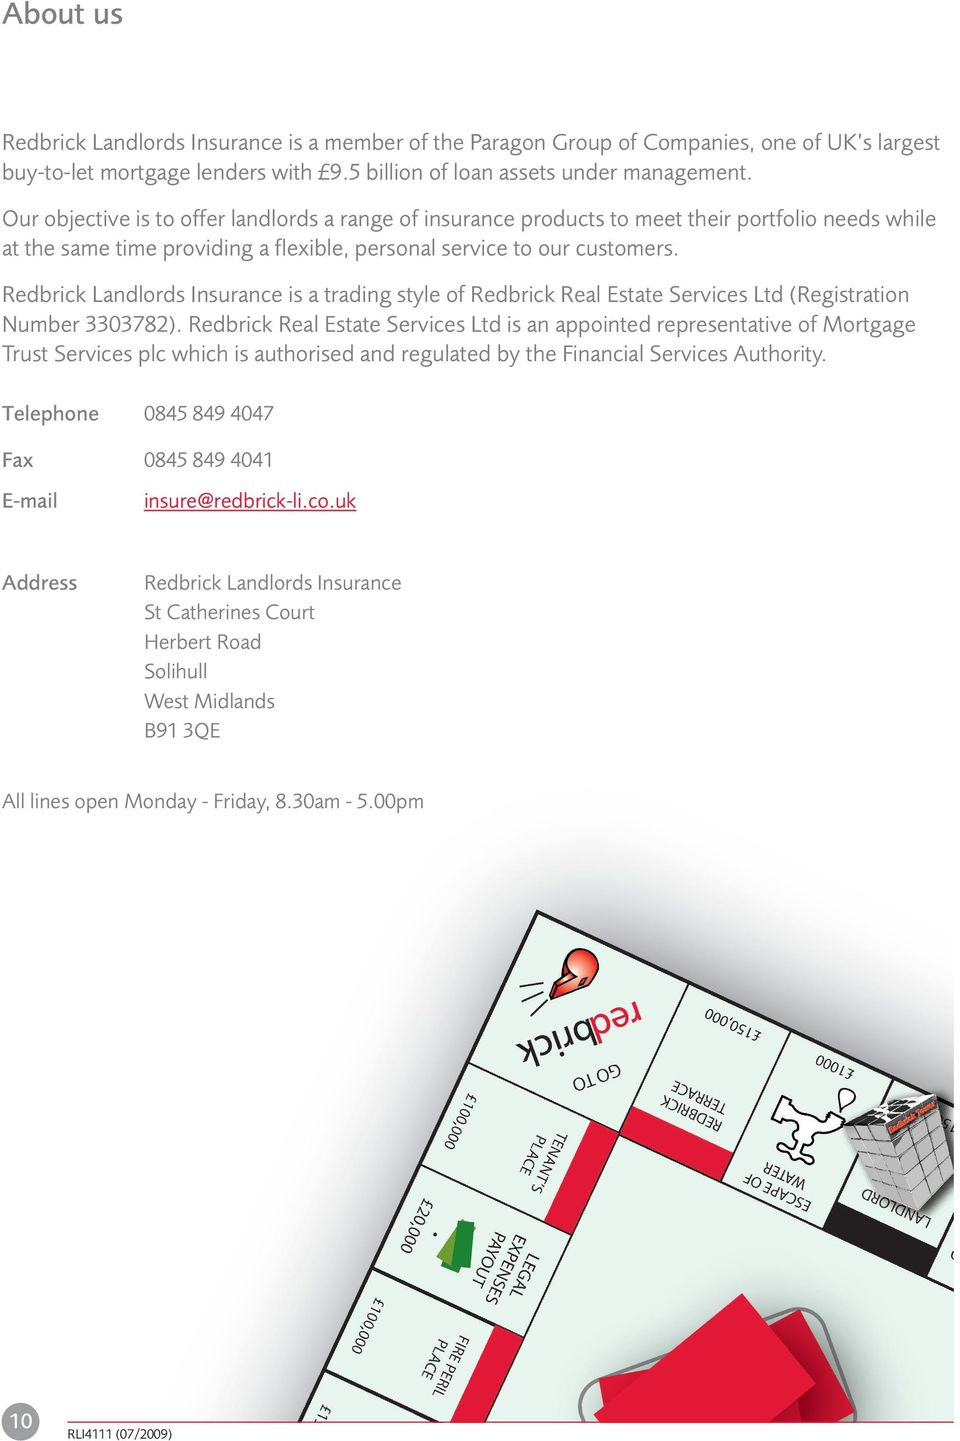 Redbrick Landlords Insurance is a trading style of Redbrick Real Estate Services Ltd (Registration Number 3303782).